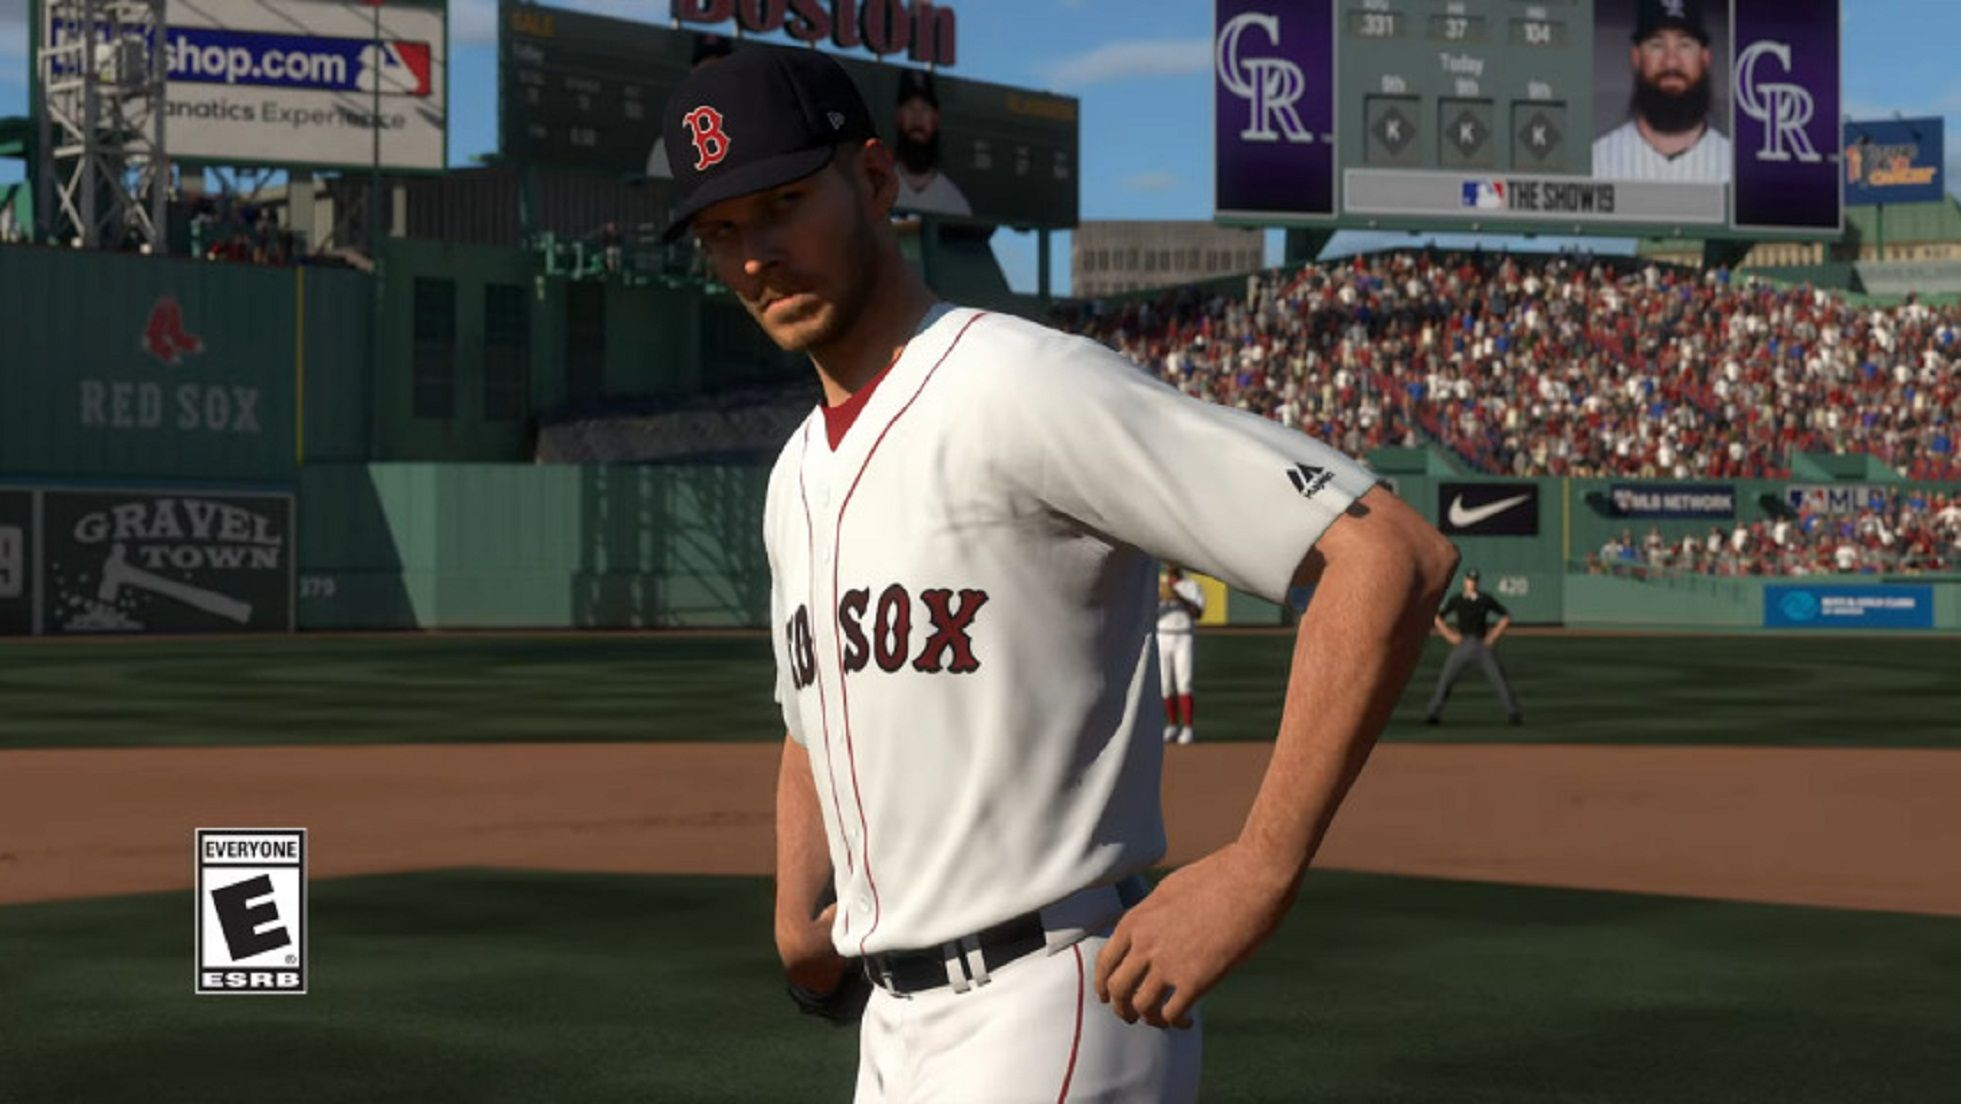 Mlb The Show Plans On Supporting Other Platforms As Early As 2021 According To Press Releases With Images Mlb The Show Video Game News Press Release